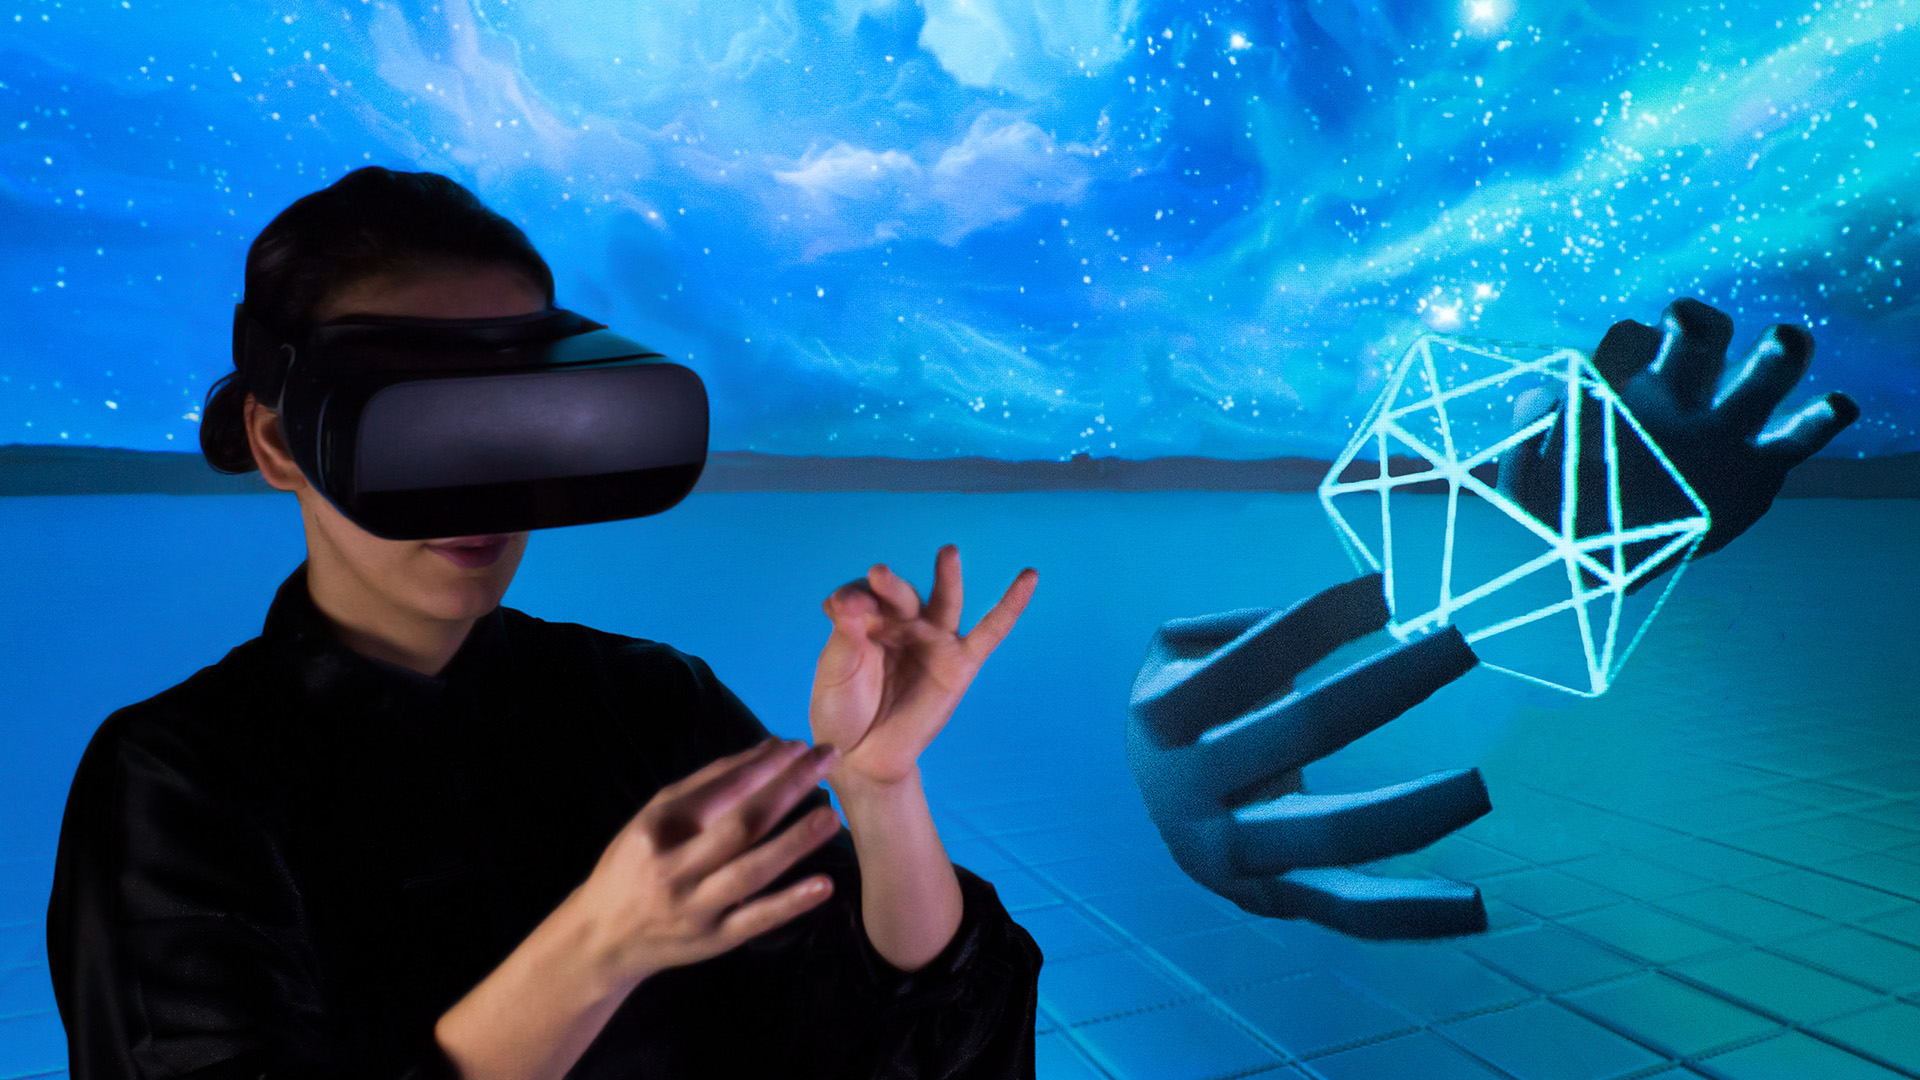 Leap Motion technology